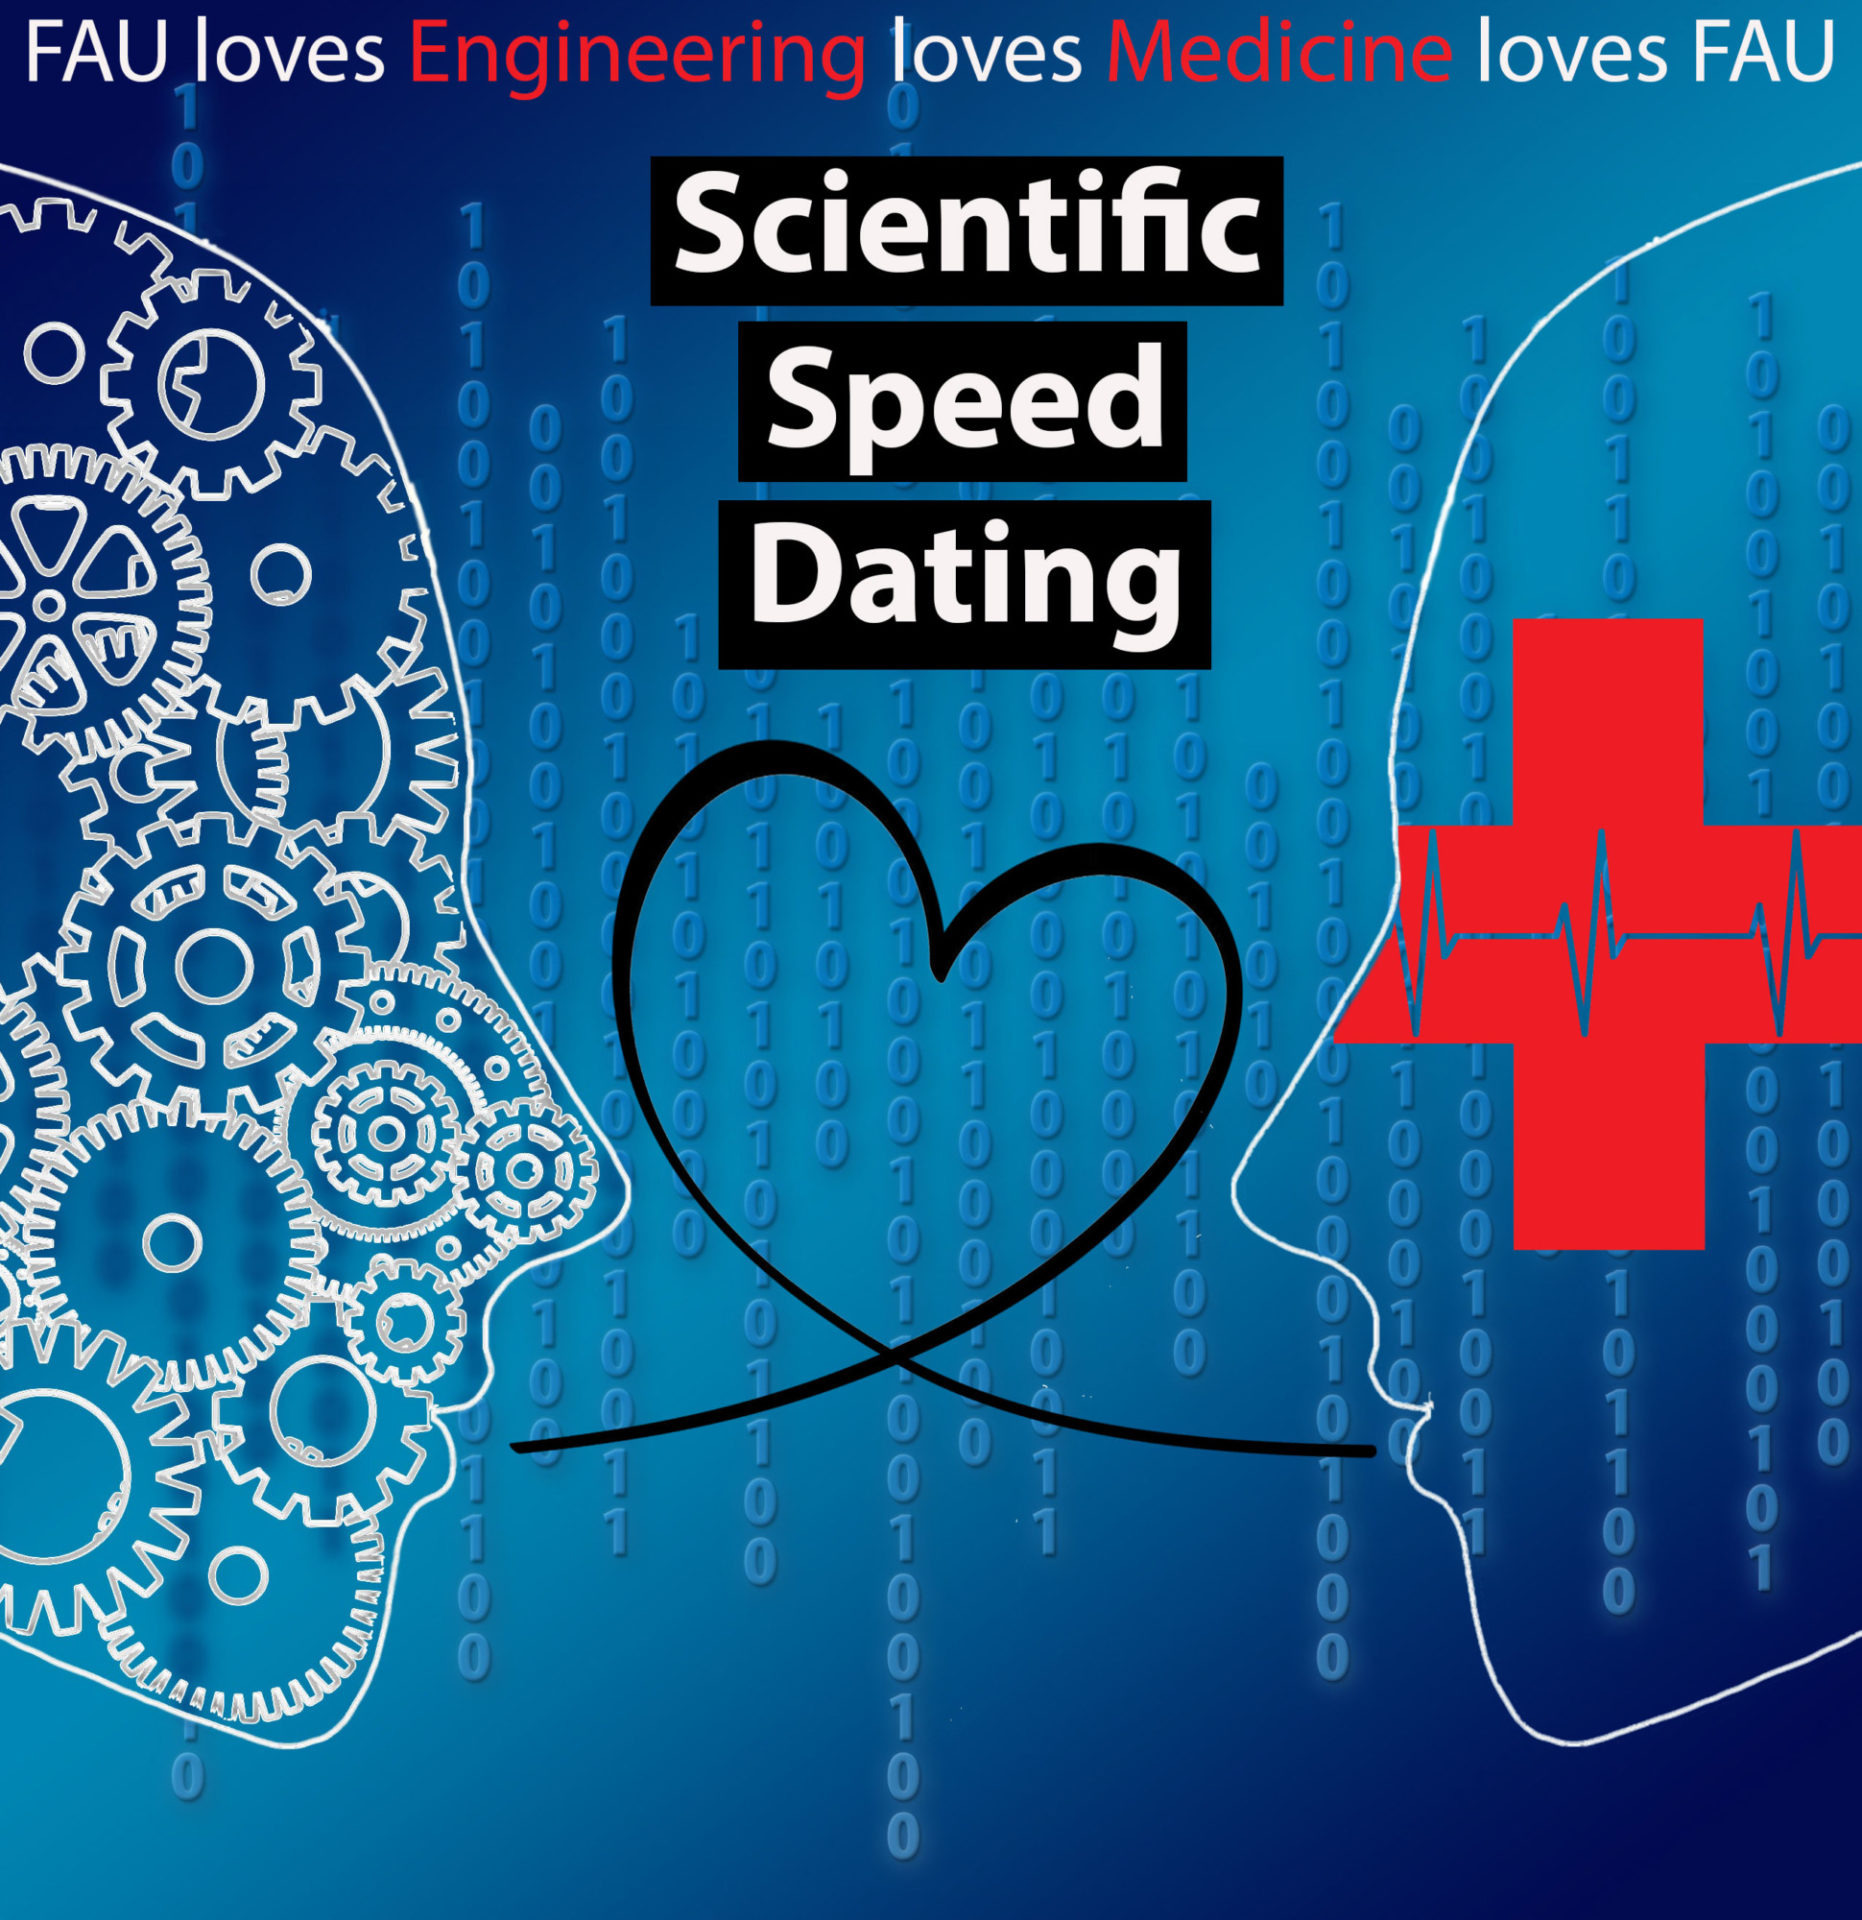 speed dating dr house House (also known as house, md) is a television series, which debuted on fox in november 2004 and concluded may 2012, that centers around dr gregory.